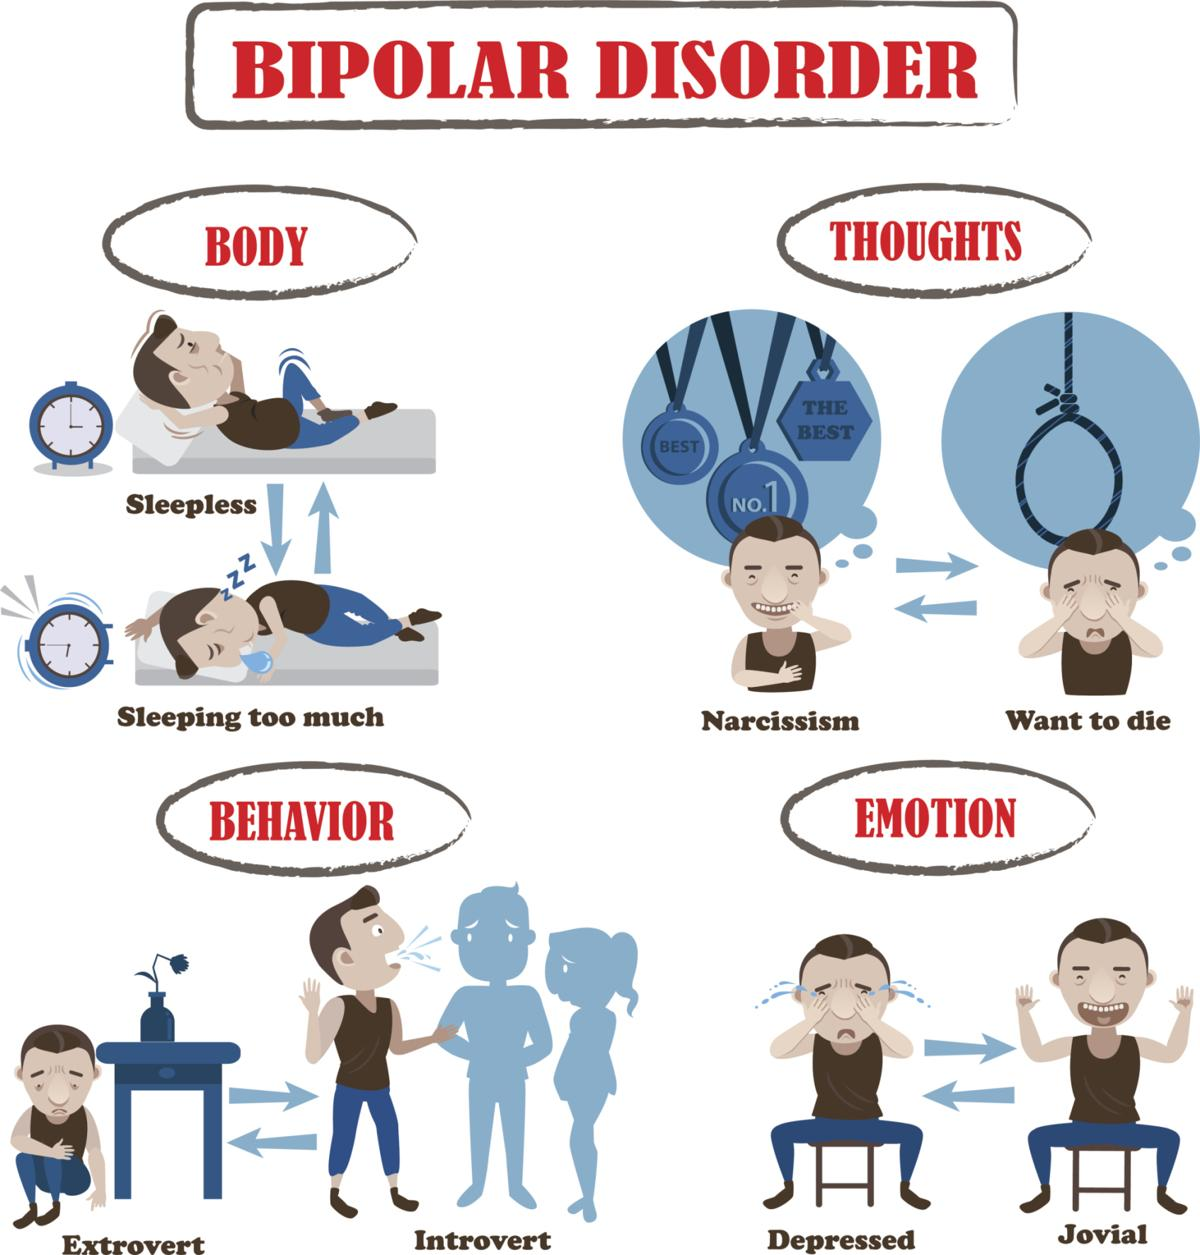 008 Bipolar Disorder Abnormal Psychology Research Paper Formidable Ideas Topic Full